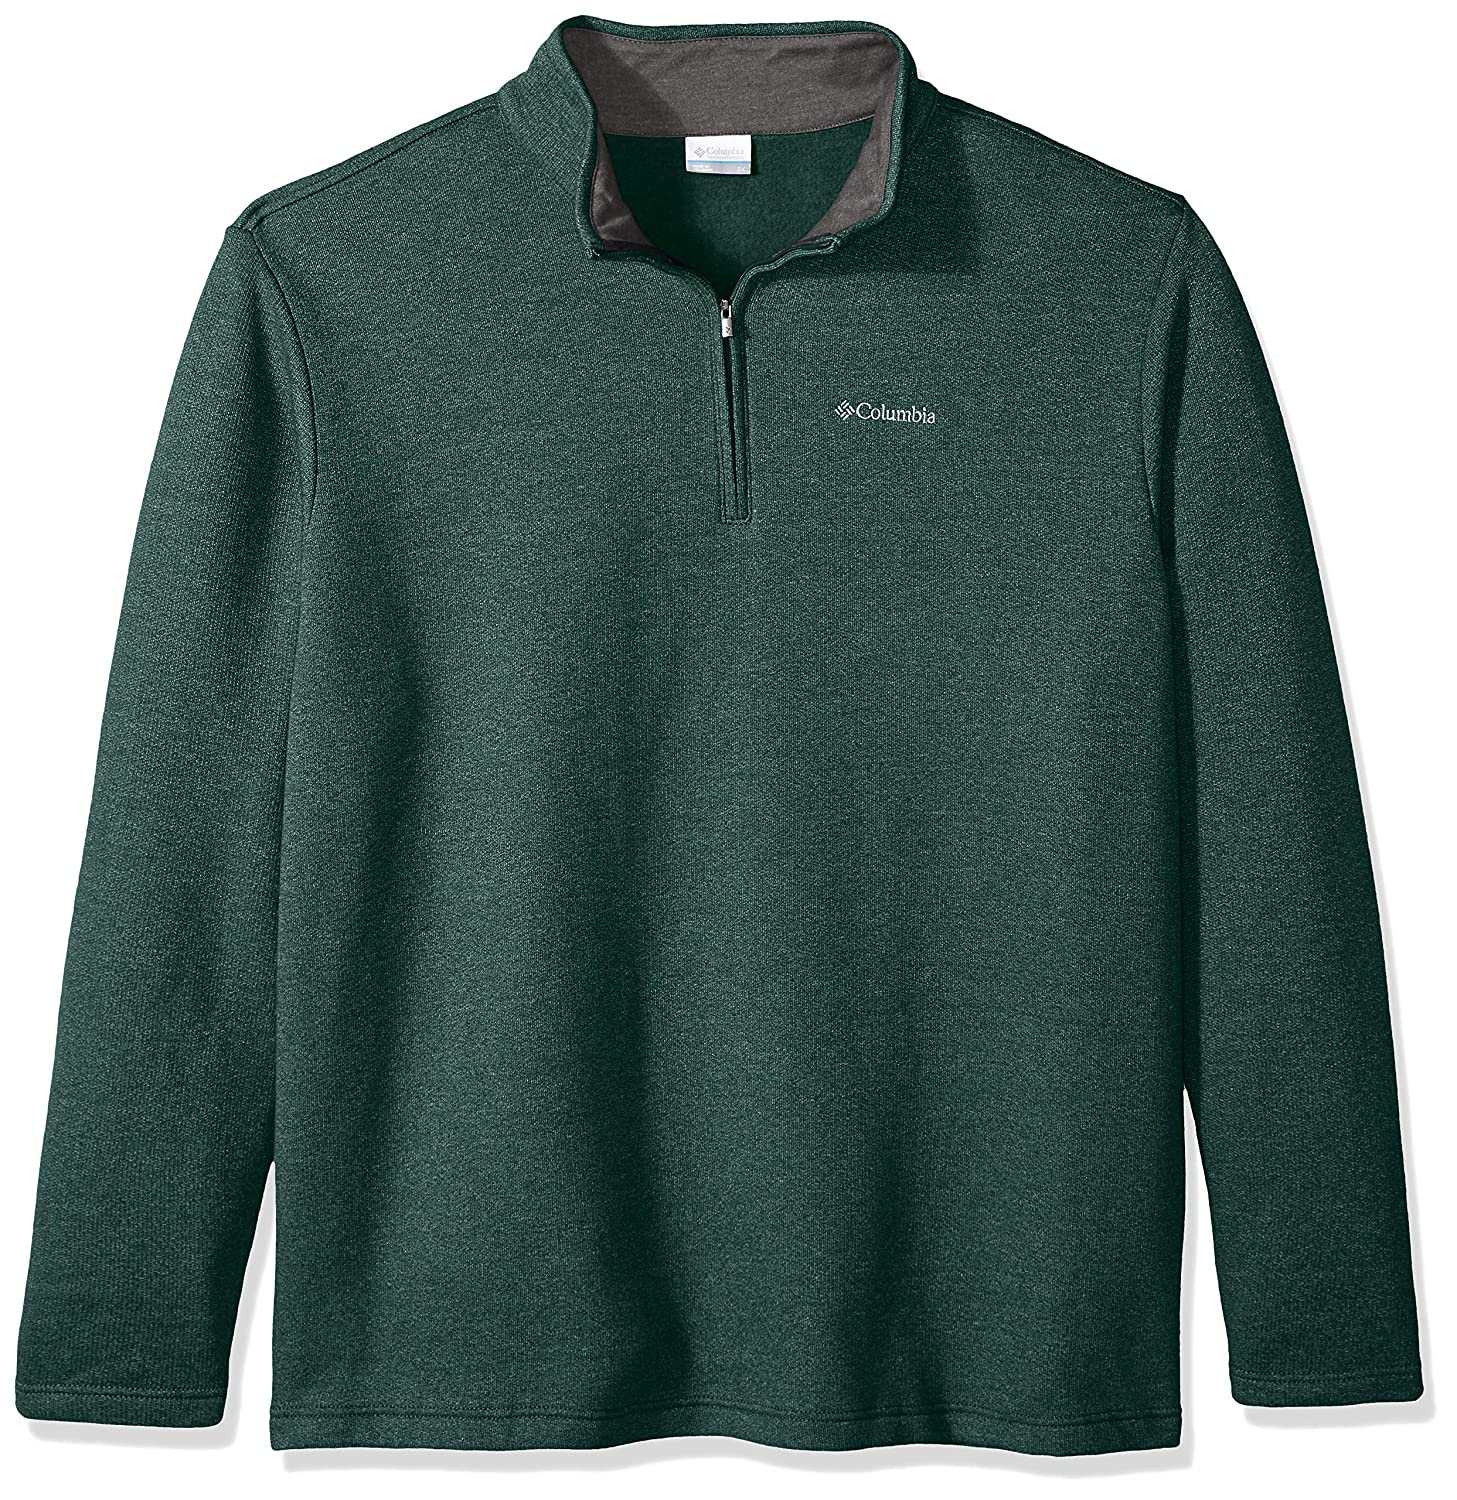 Columbia Men's Hart Mountain Iii Big & Tall Half Zip